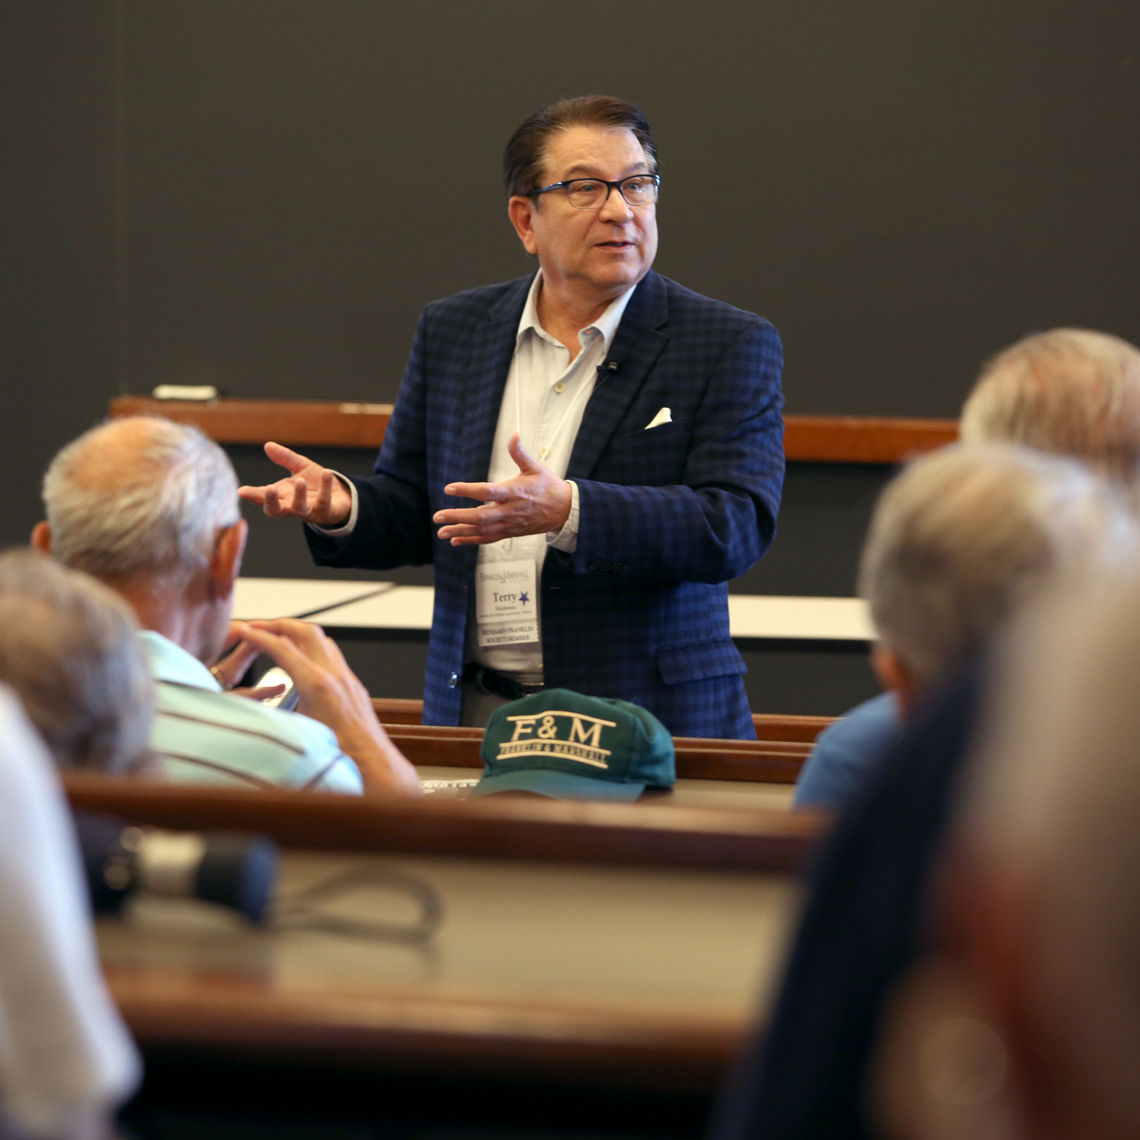 Franklin & Marshall College Poll Director Terry Madonna talked about political and polarization at his Alumni College presentation.